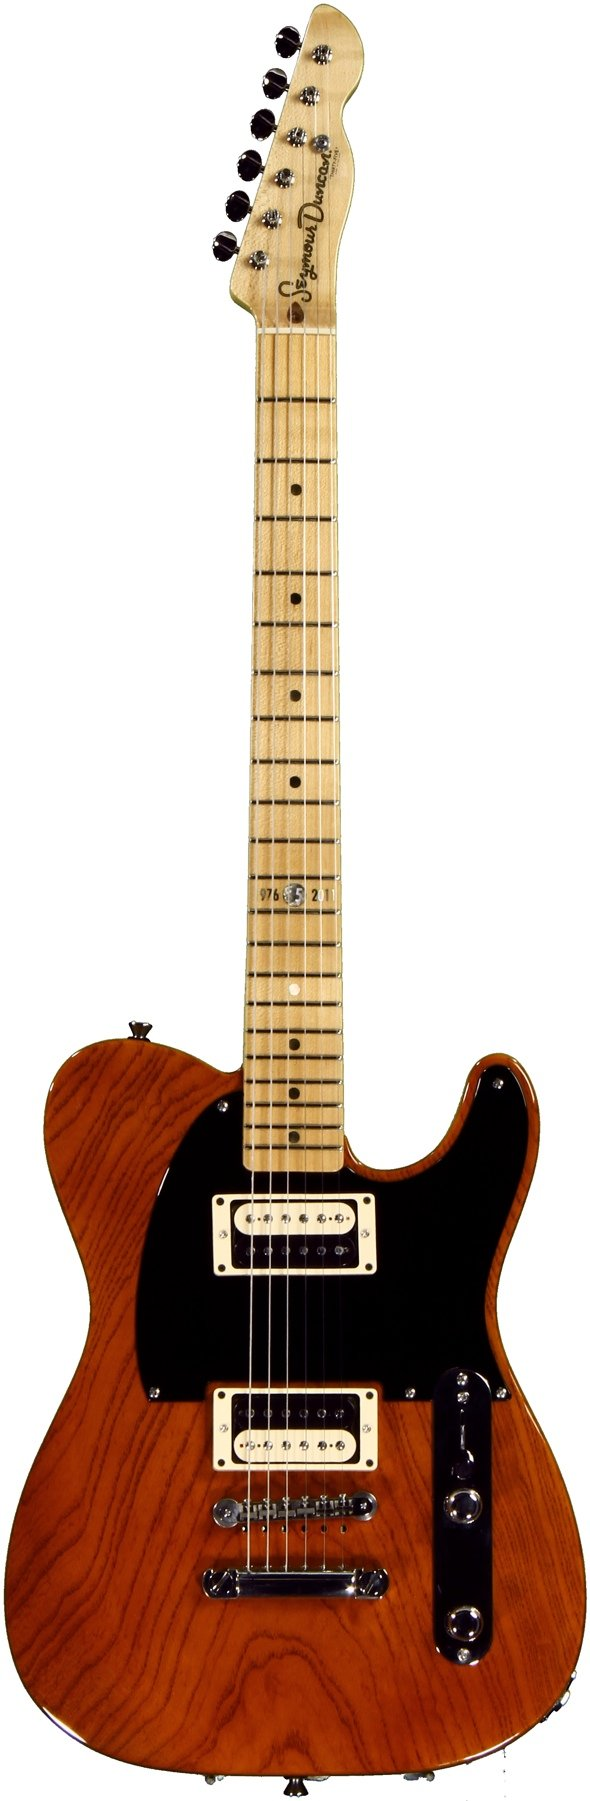 Seymour Duncan Limited Edition 35th Anniversary Guitar | Sweetwater